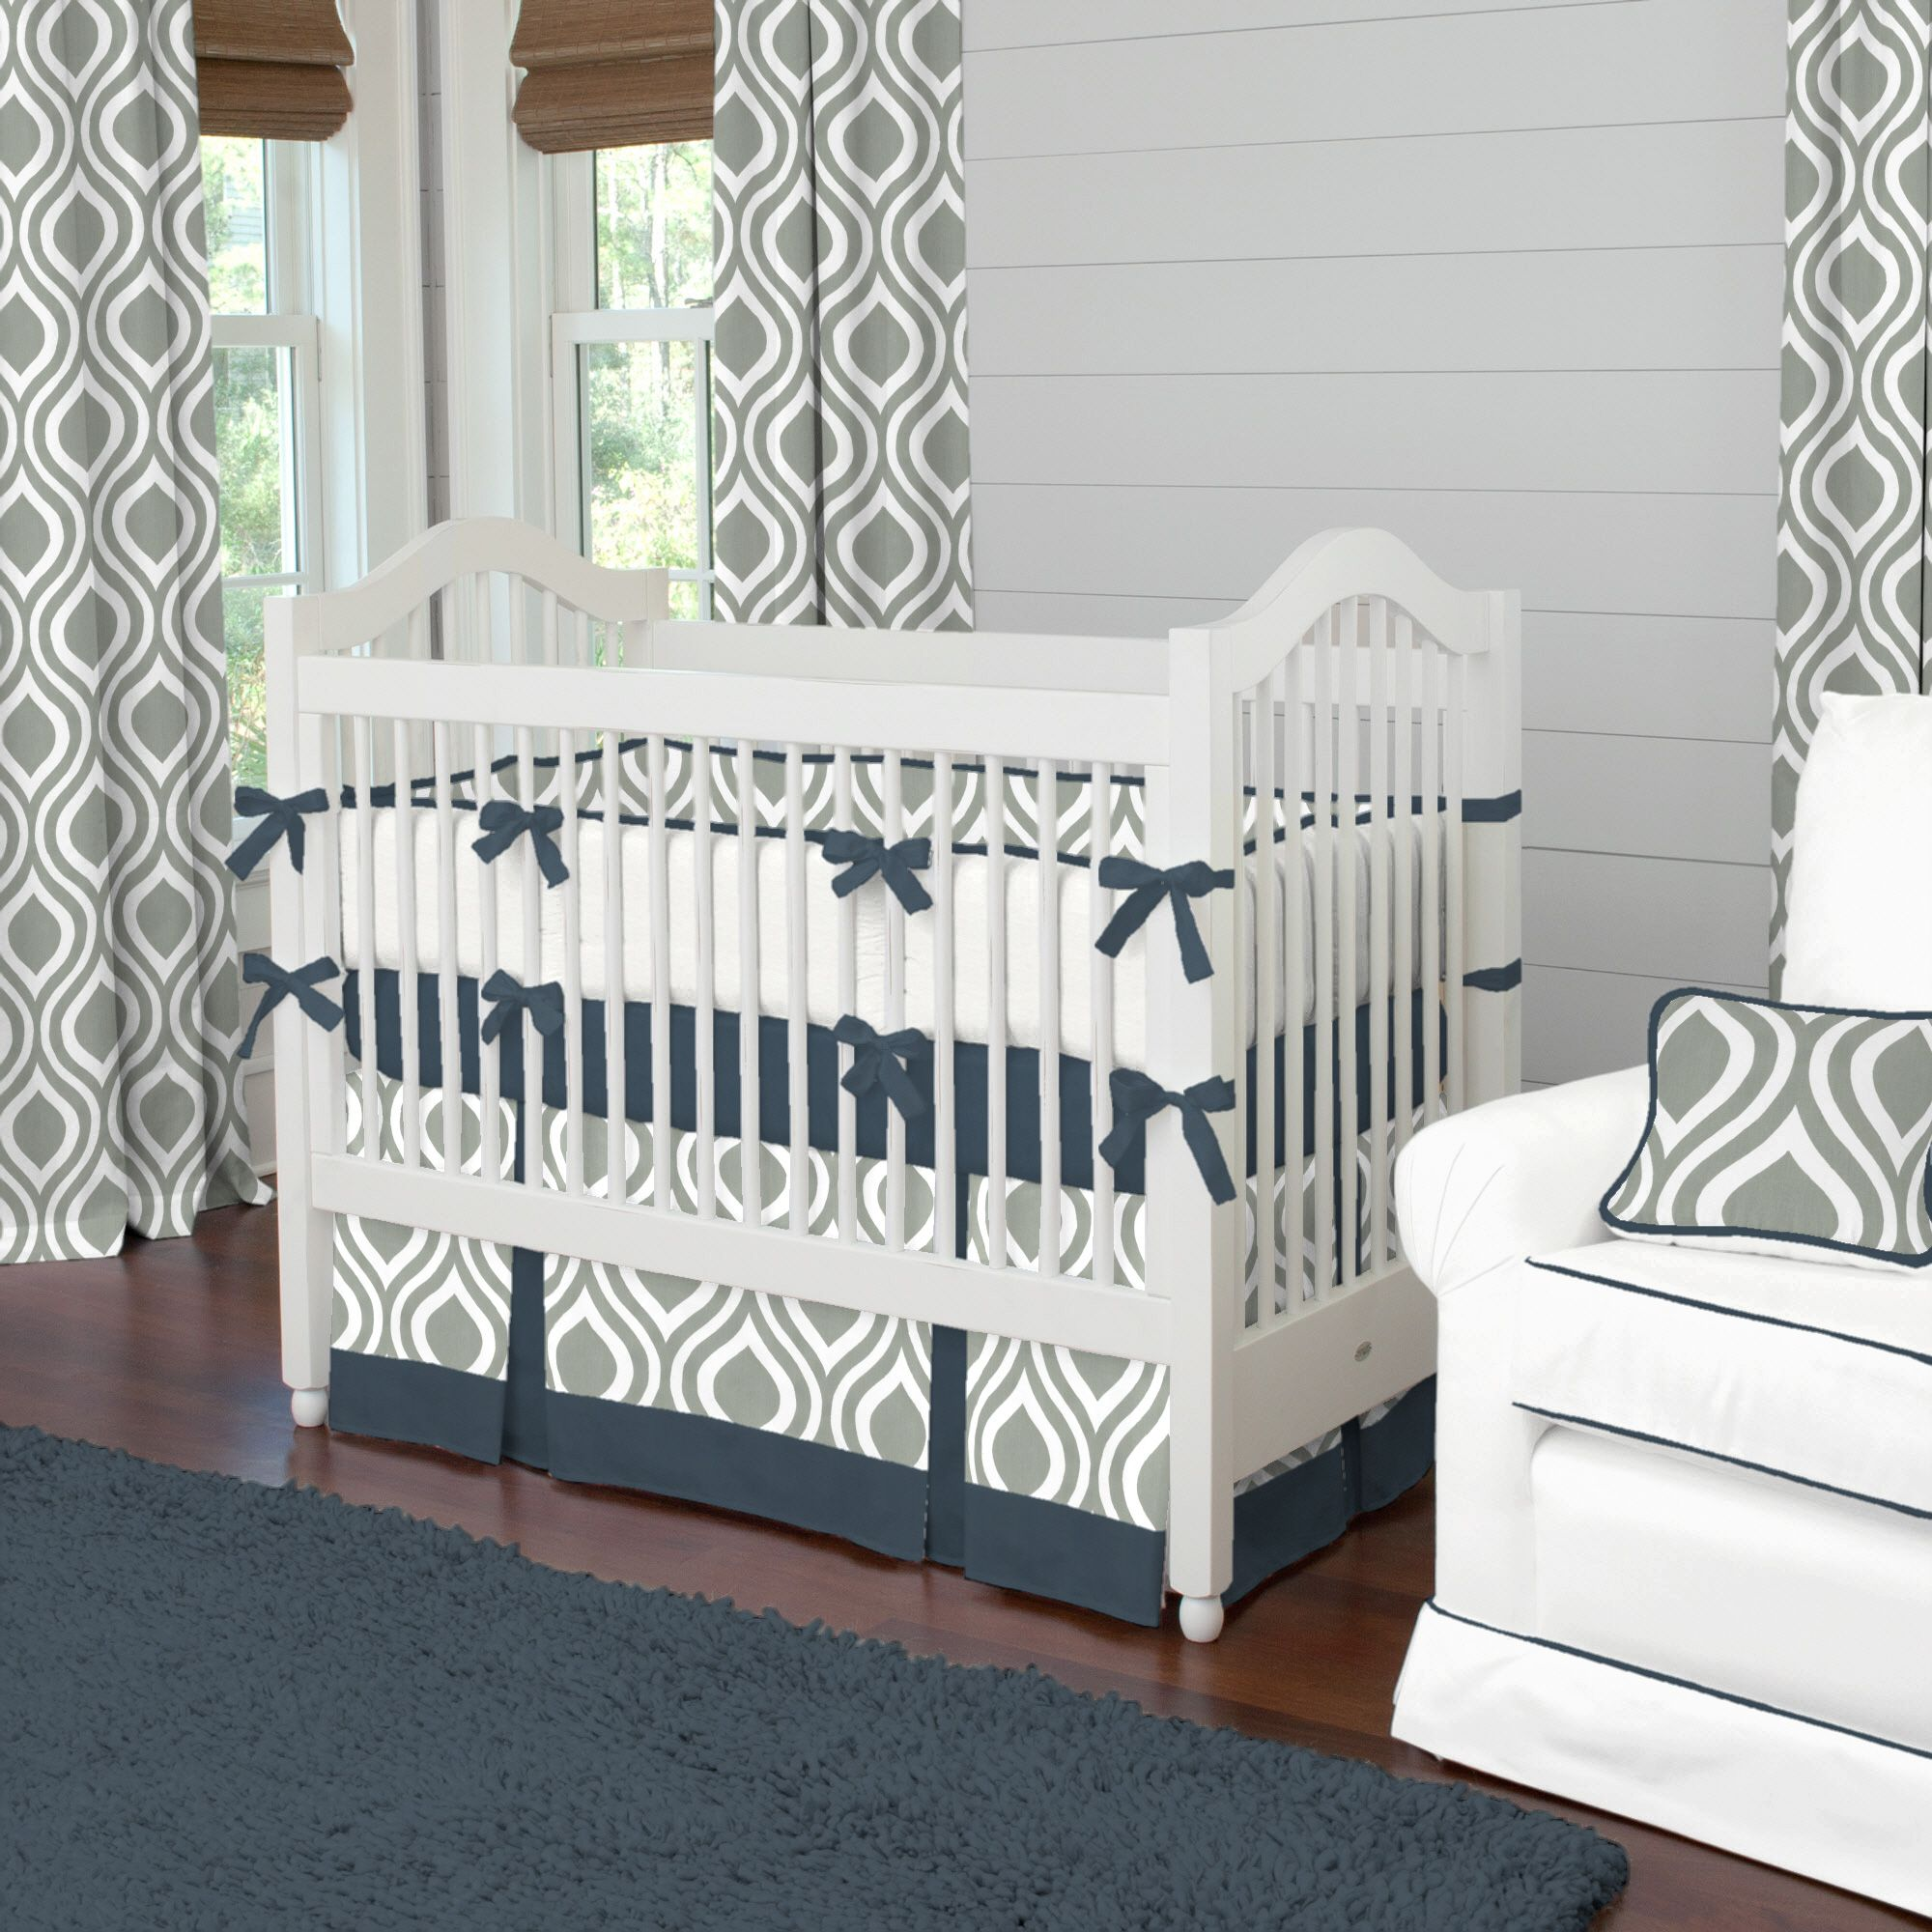 Gray and Navy Raindrops Baby Crib Bedding carouseldesigns